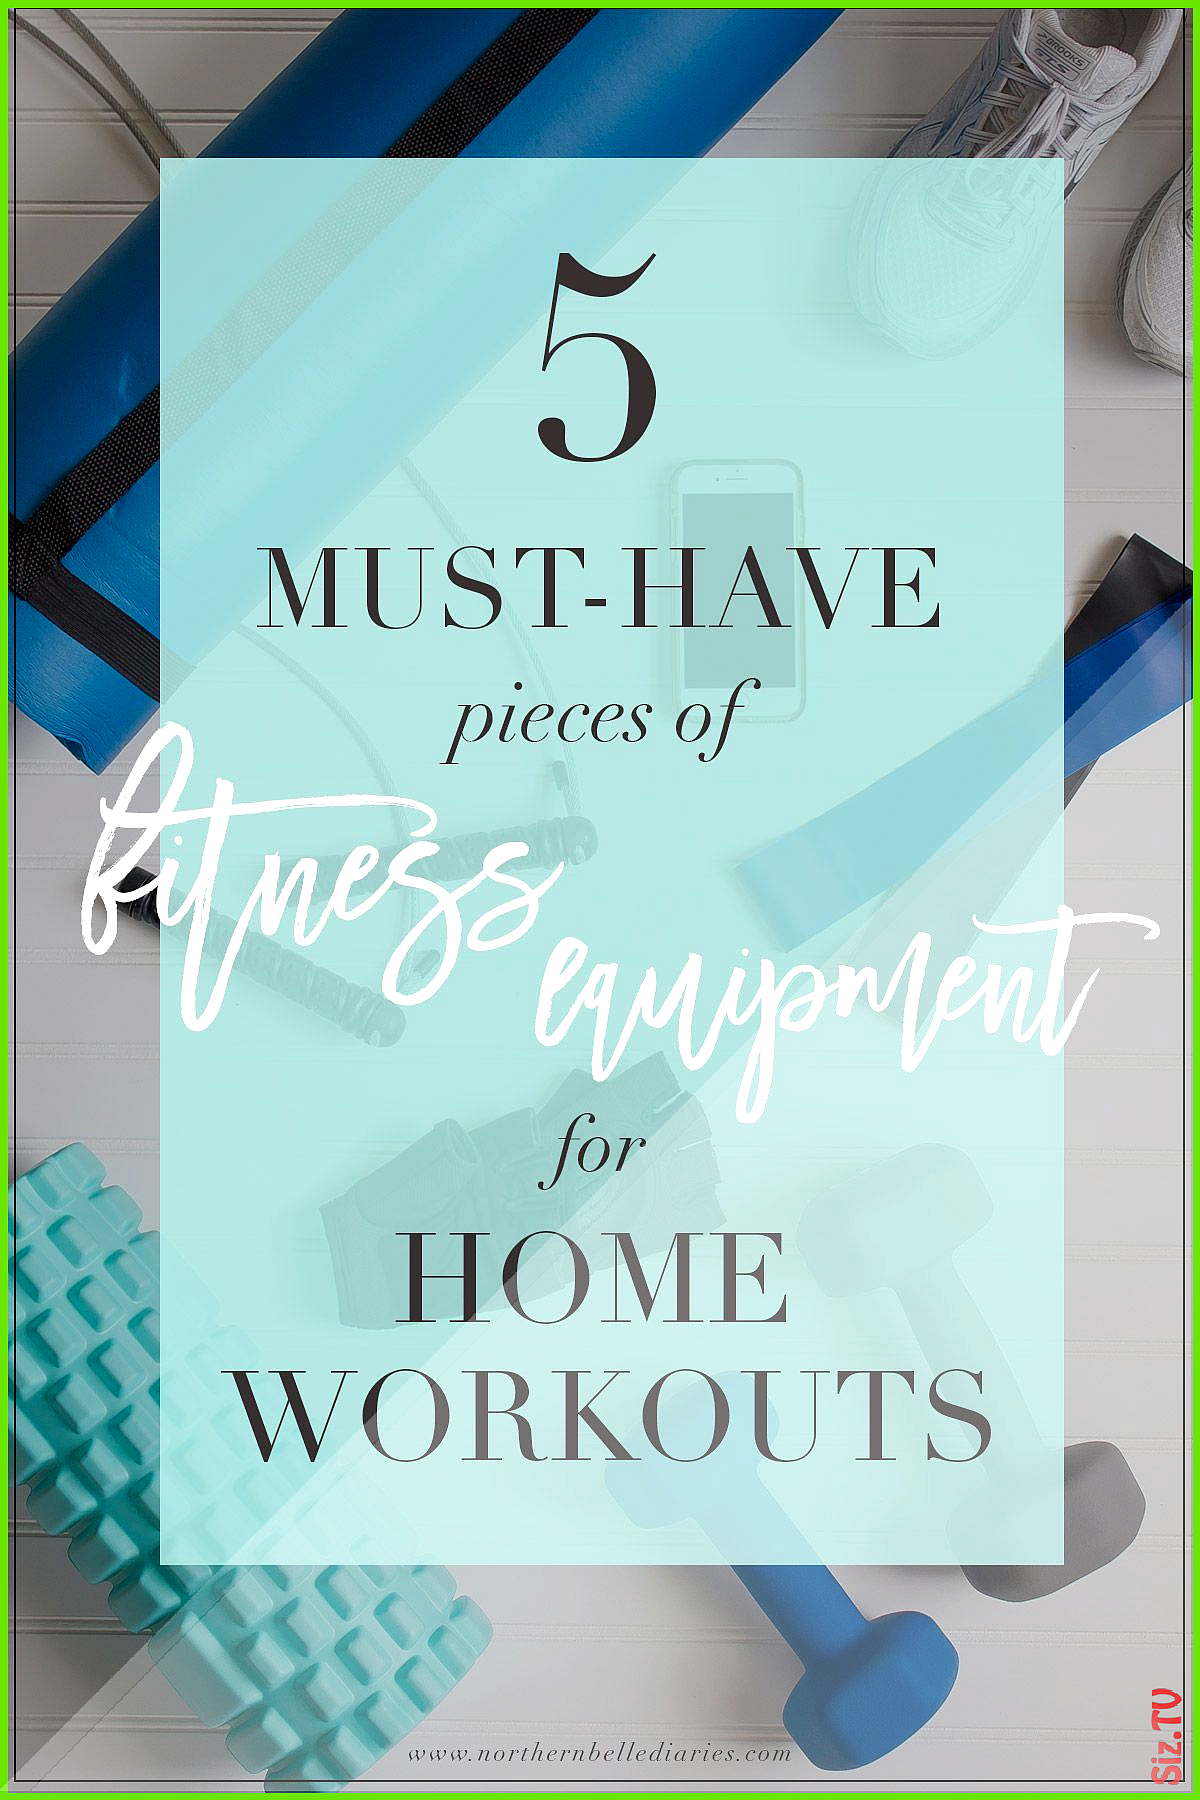 5 Must-Have Pieces of Fitness Equipment for Home Workouts 5 Must-Have Pieces of Fitness Equipment fo...